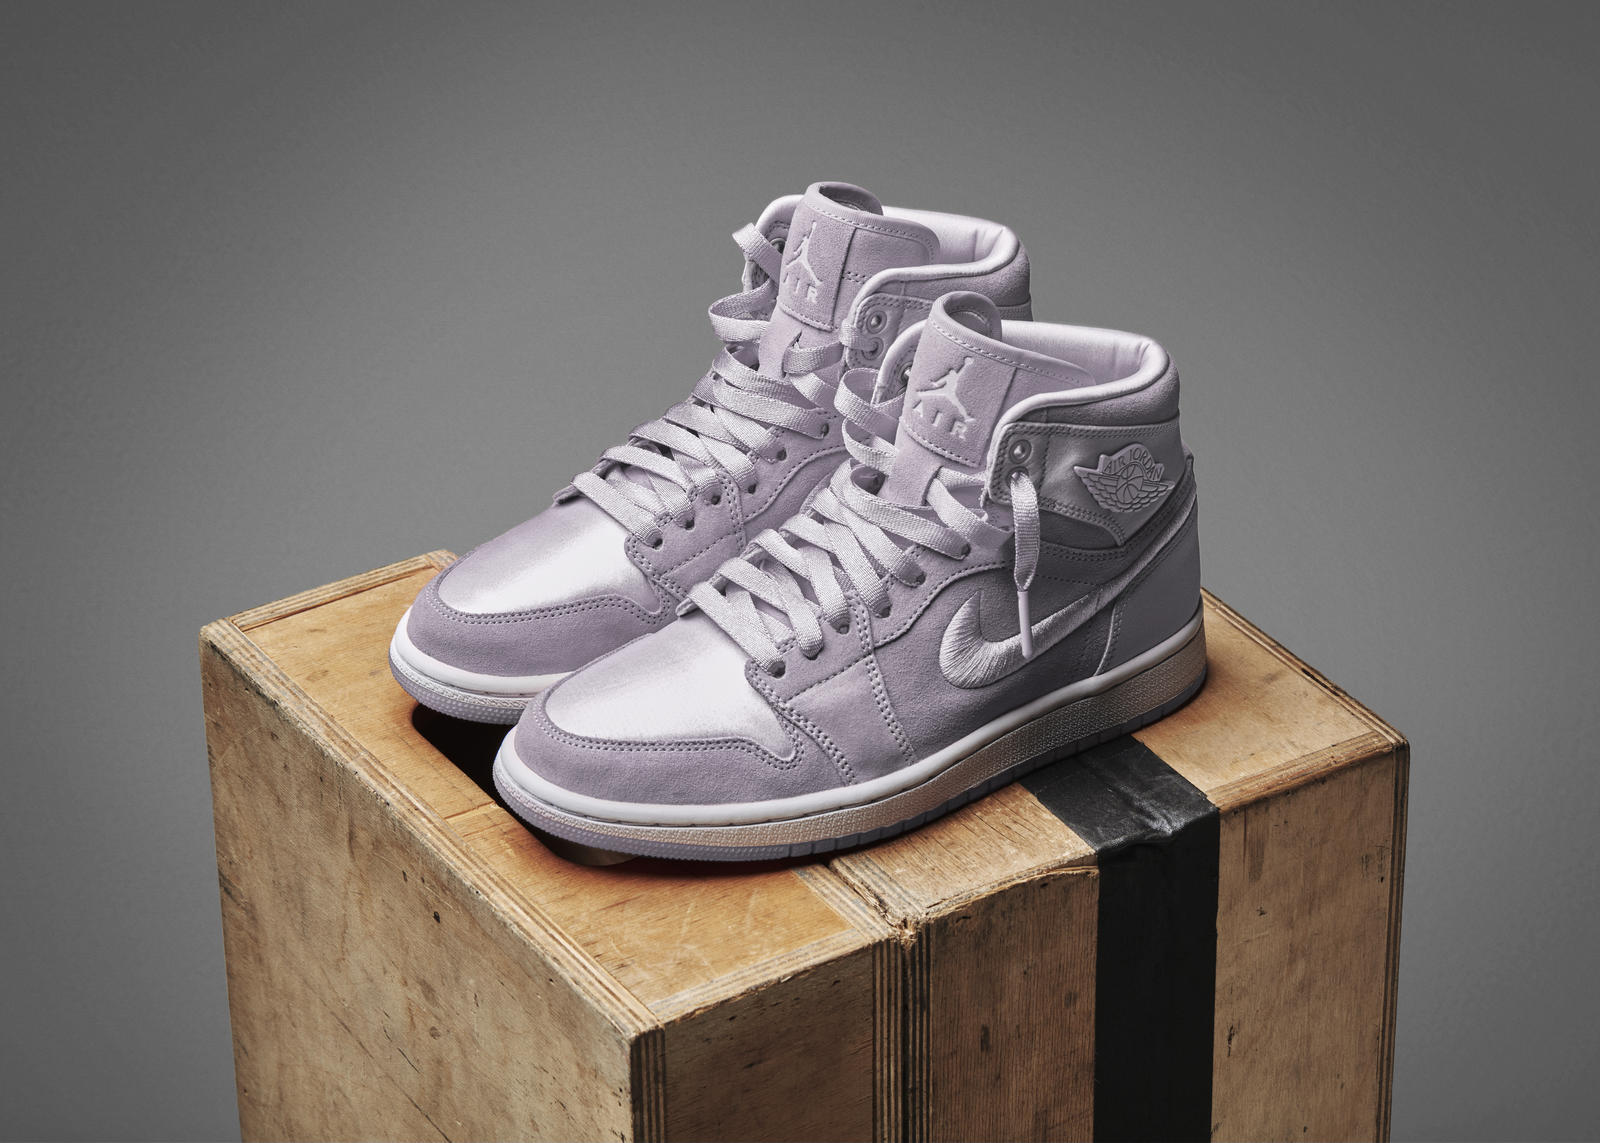 new concept d71e1 2a107 Jordan Brand Reveals Spring 2018 Women's Collection - Nike News